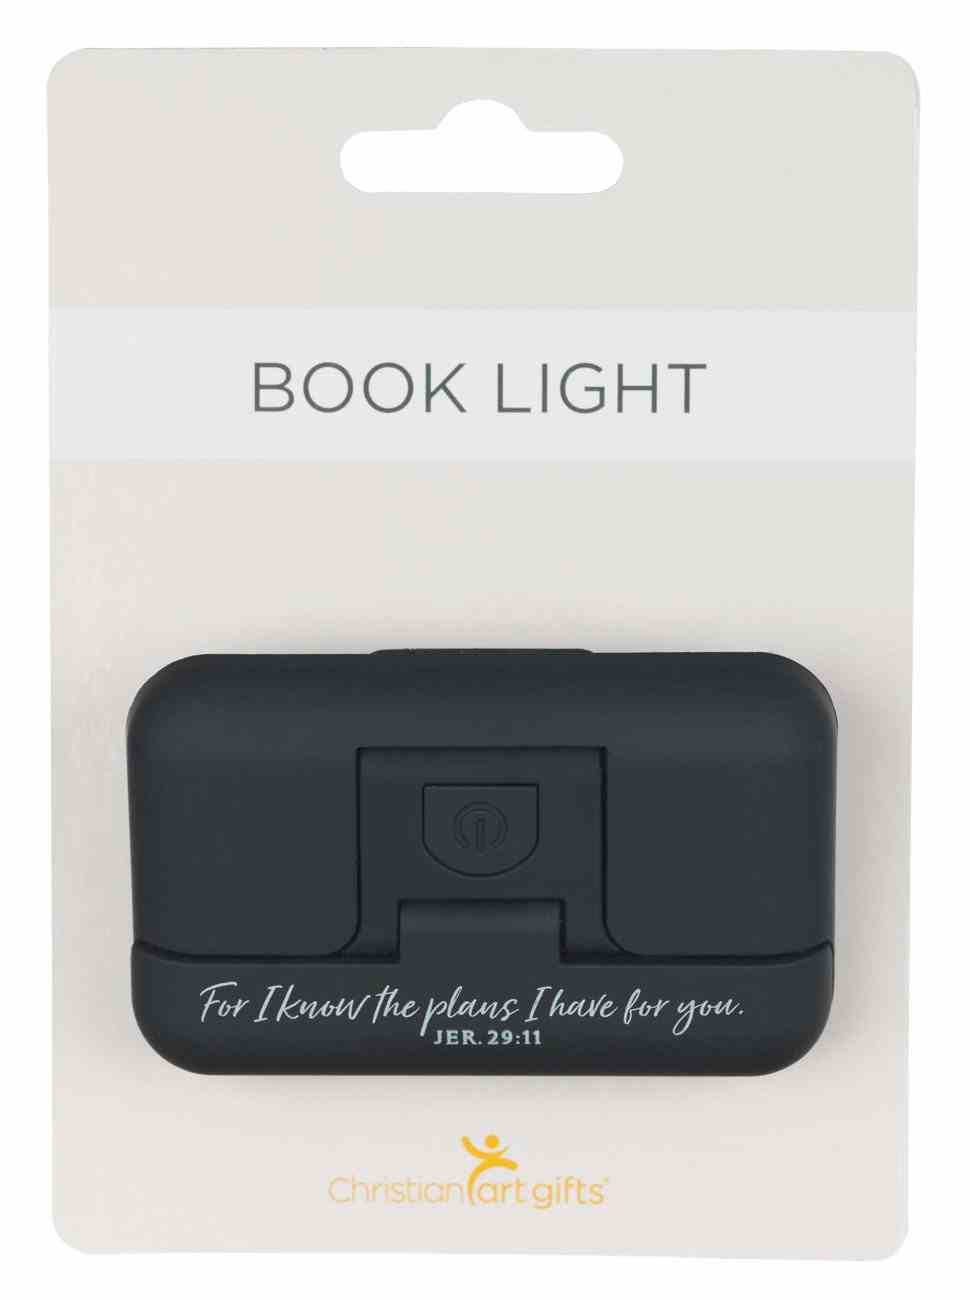 Pivoting Led Booklight: For I Know the Plans, Jer 29:11, Black Homeware